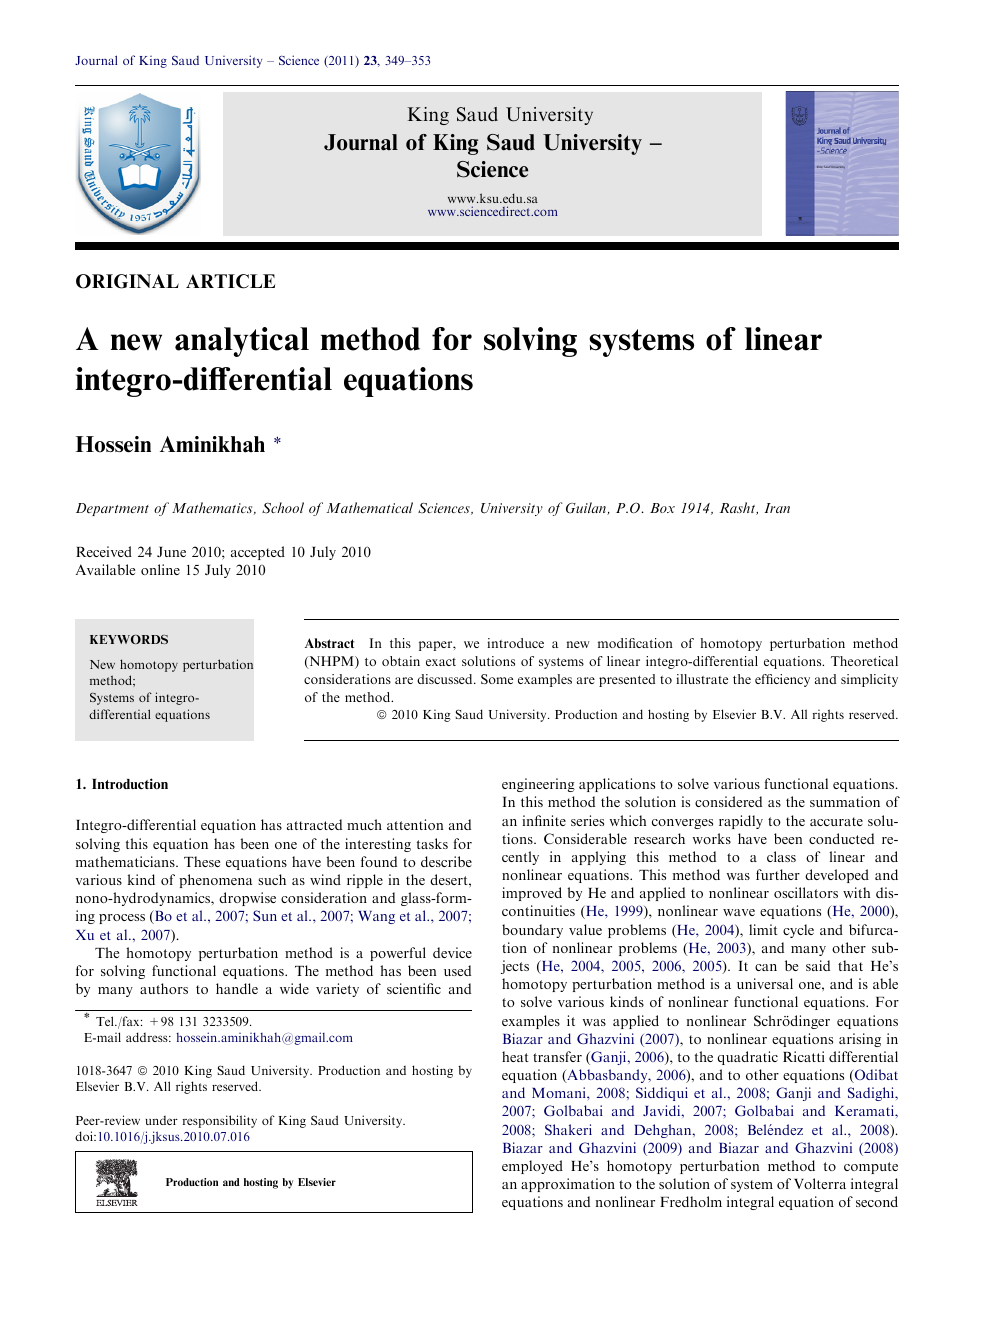 A new analytical method for solving systems of linear